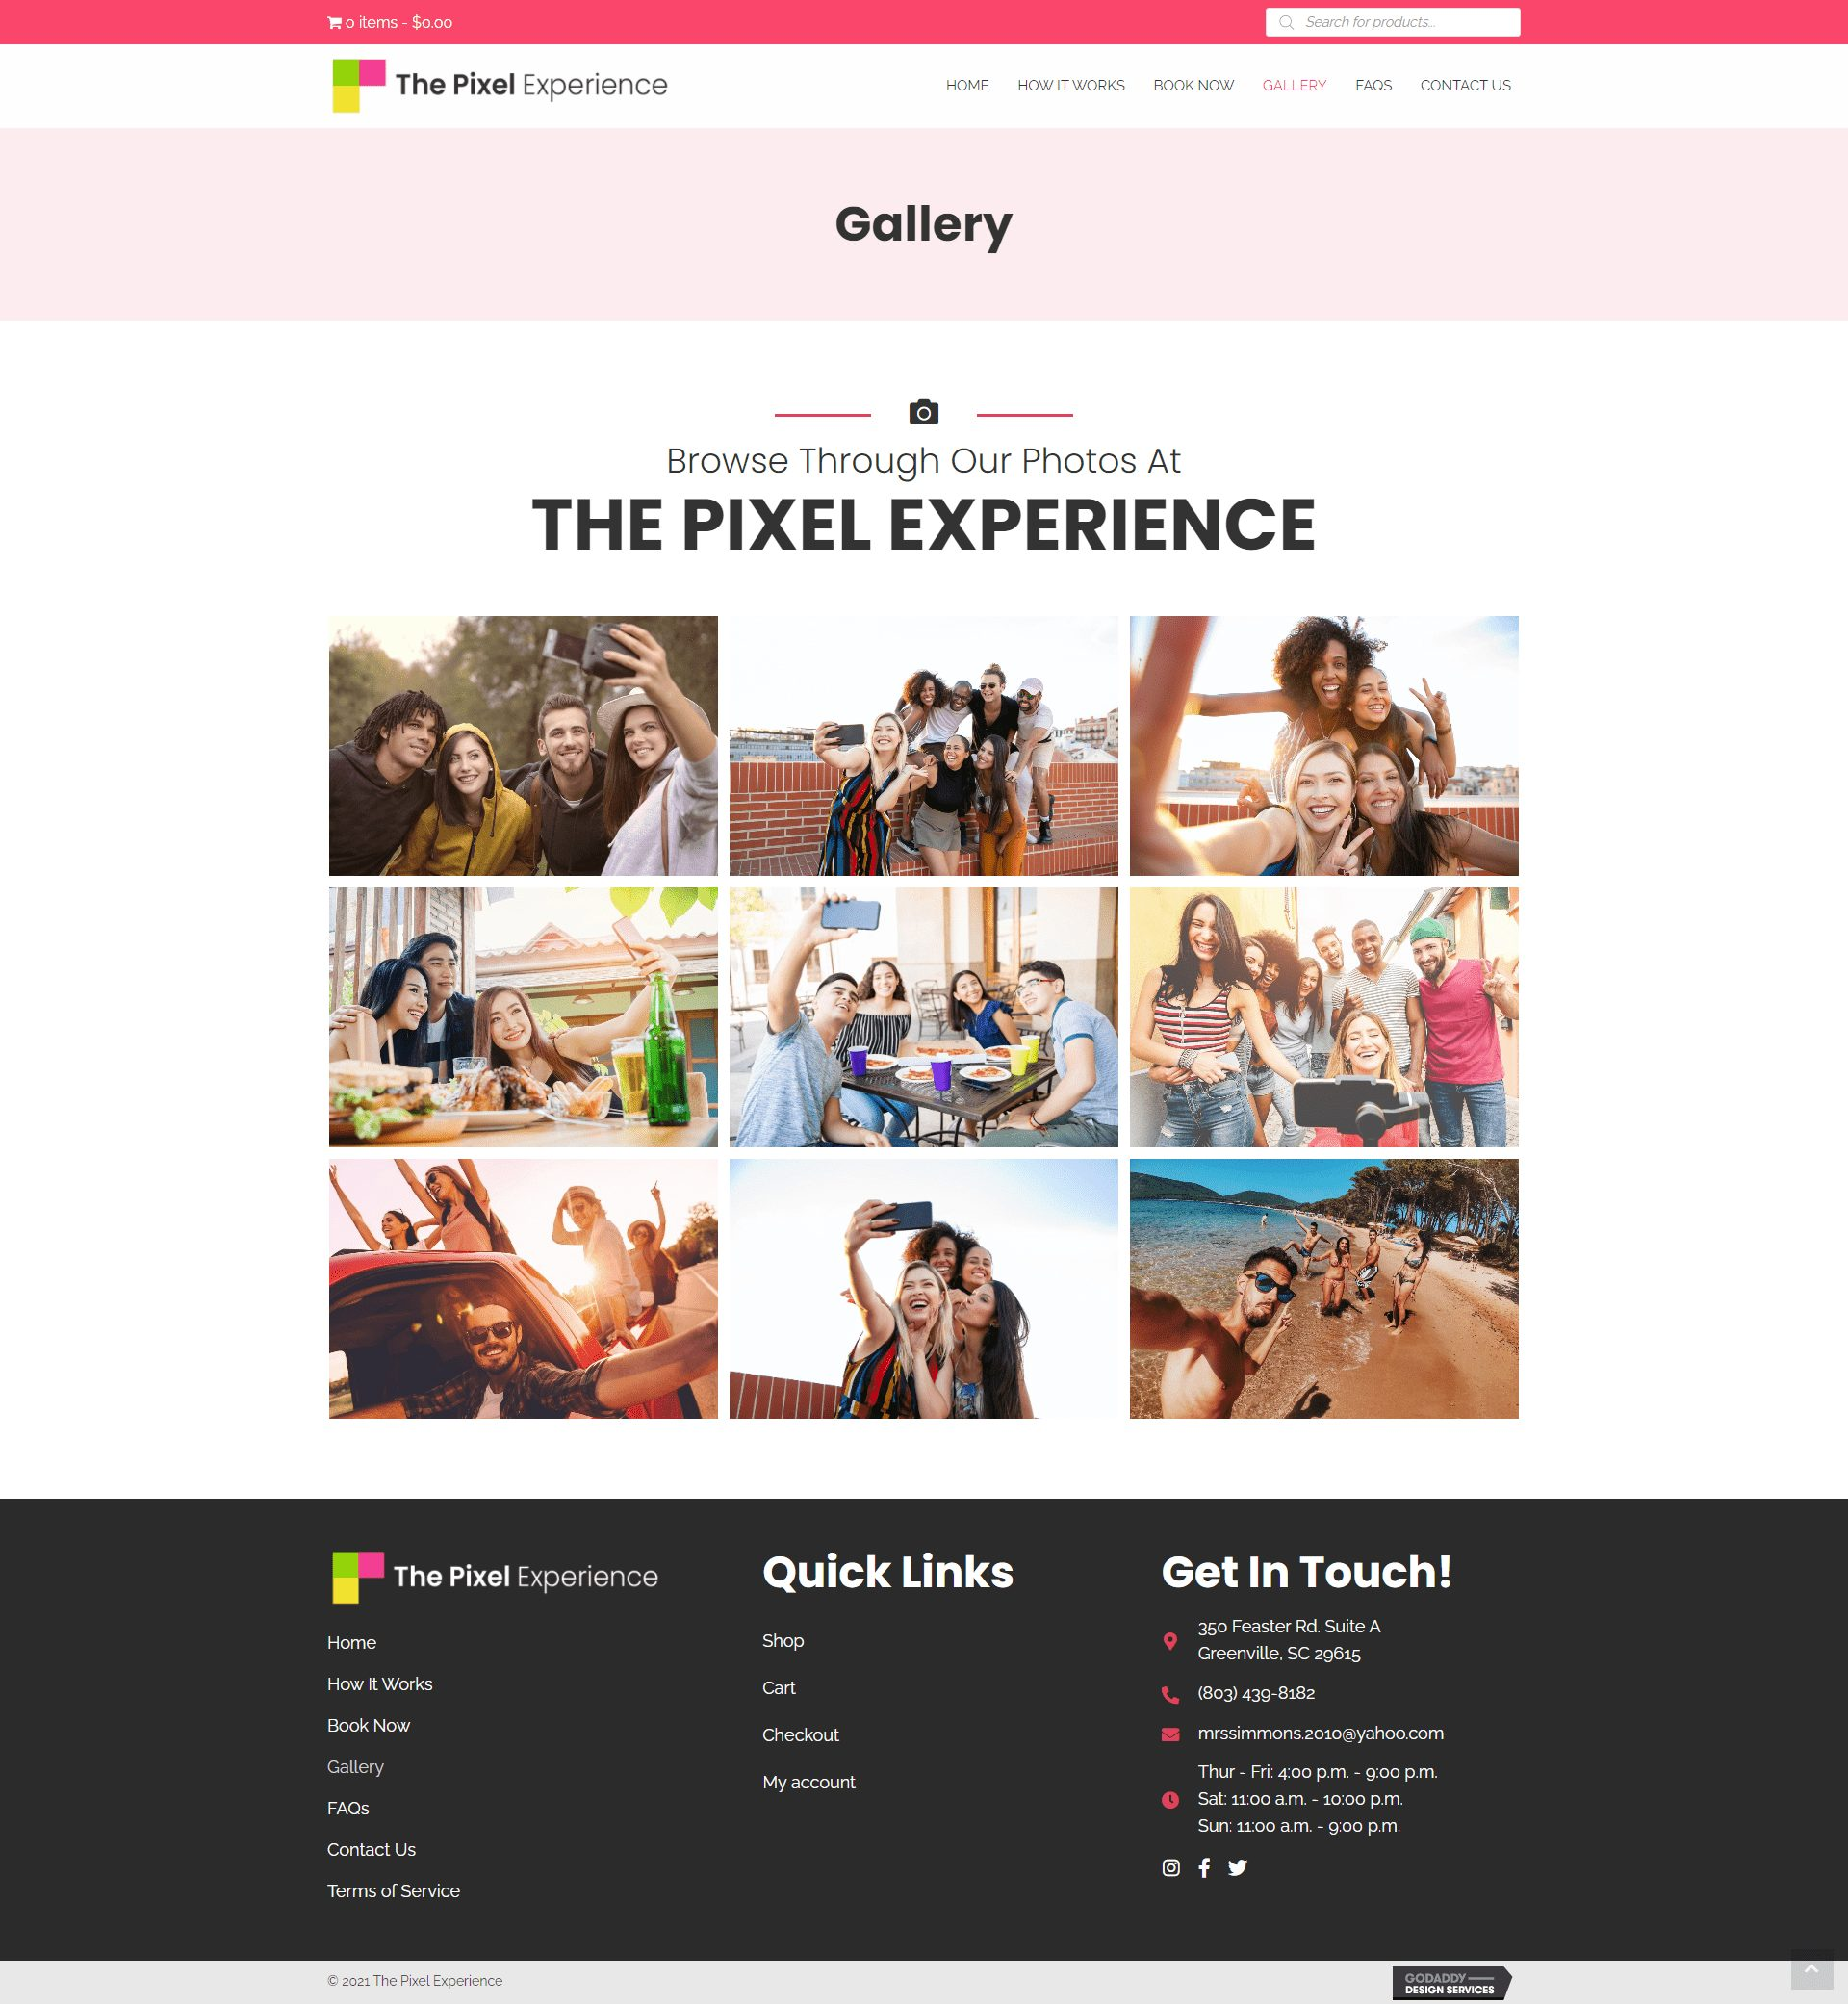 The Pixel Experience Gallery